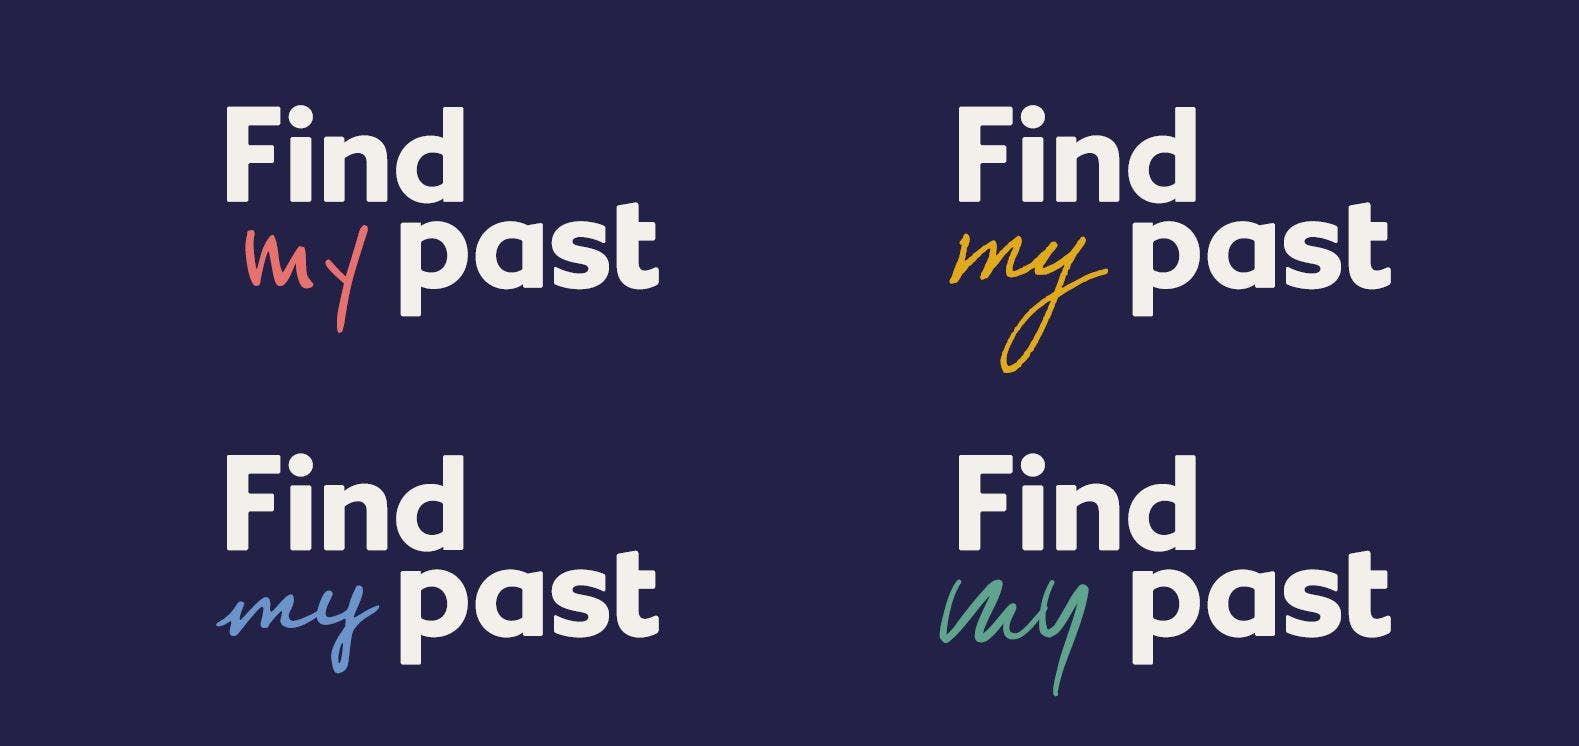 Findmypast new brand 2020